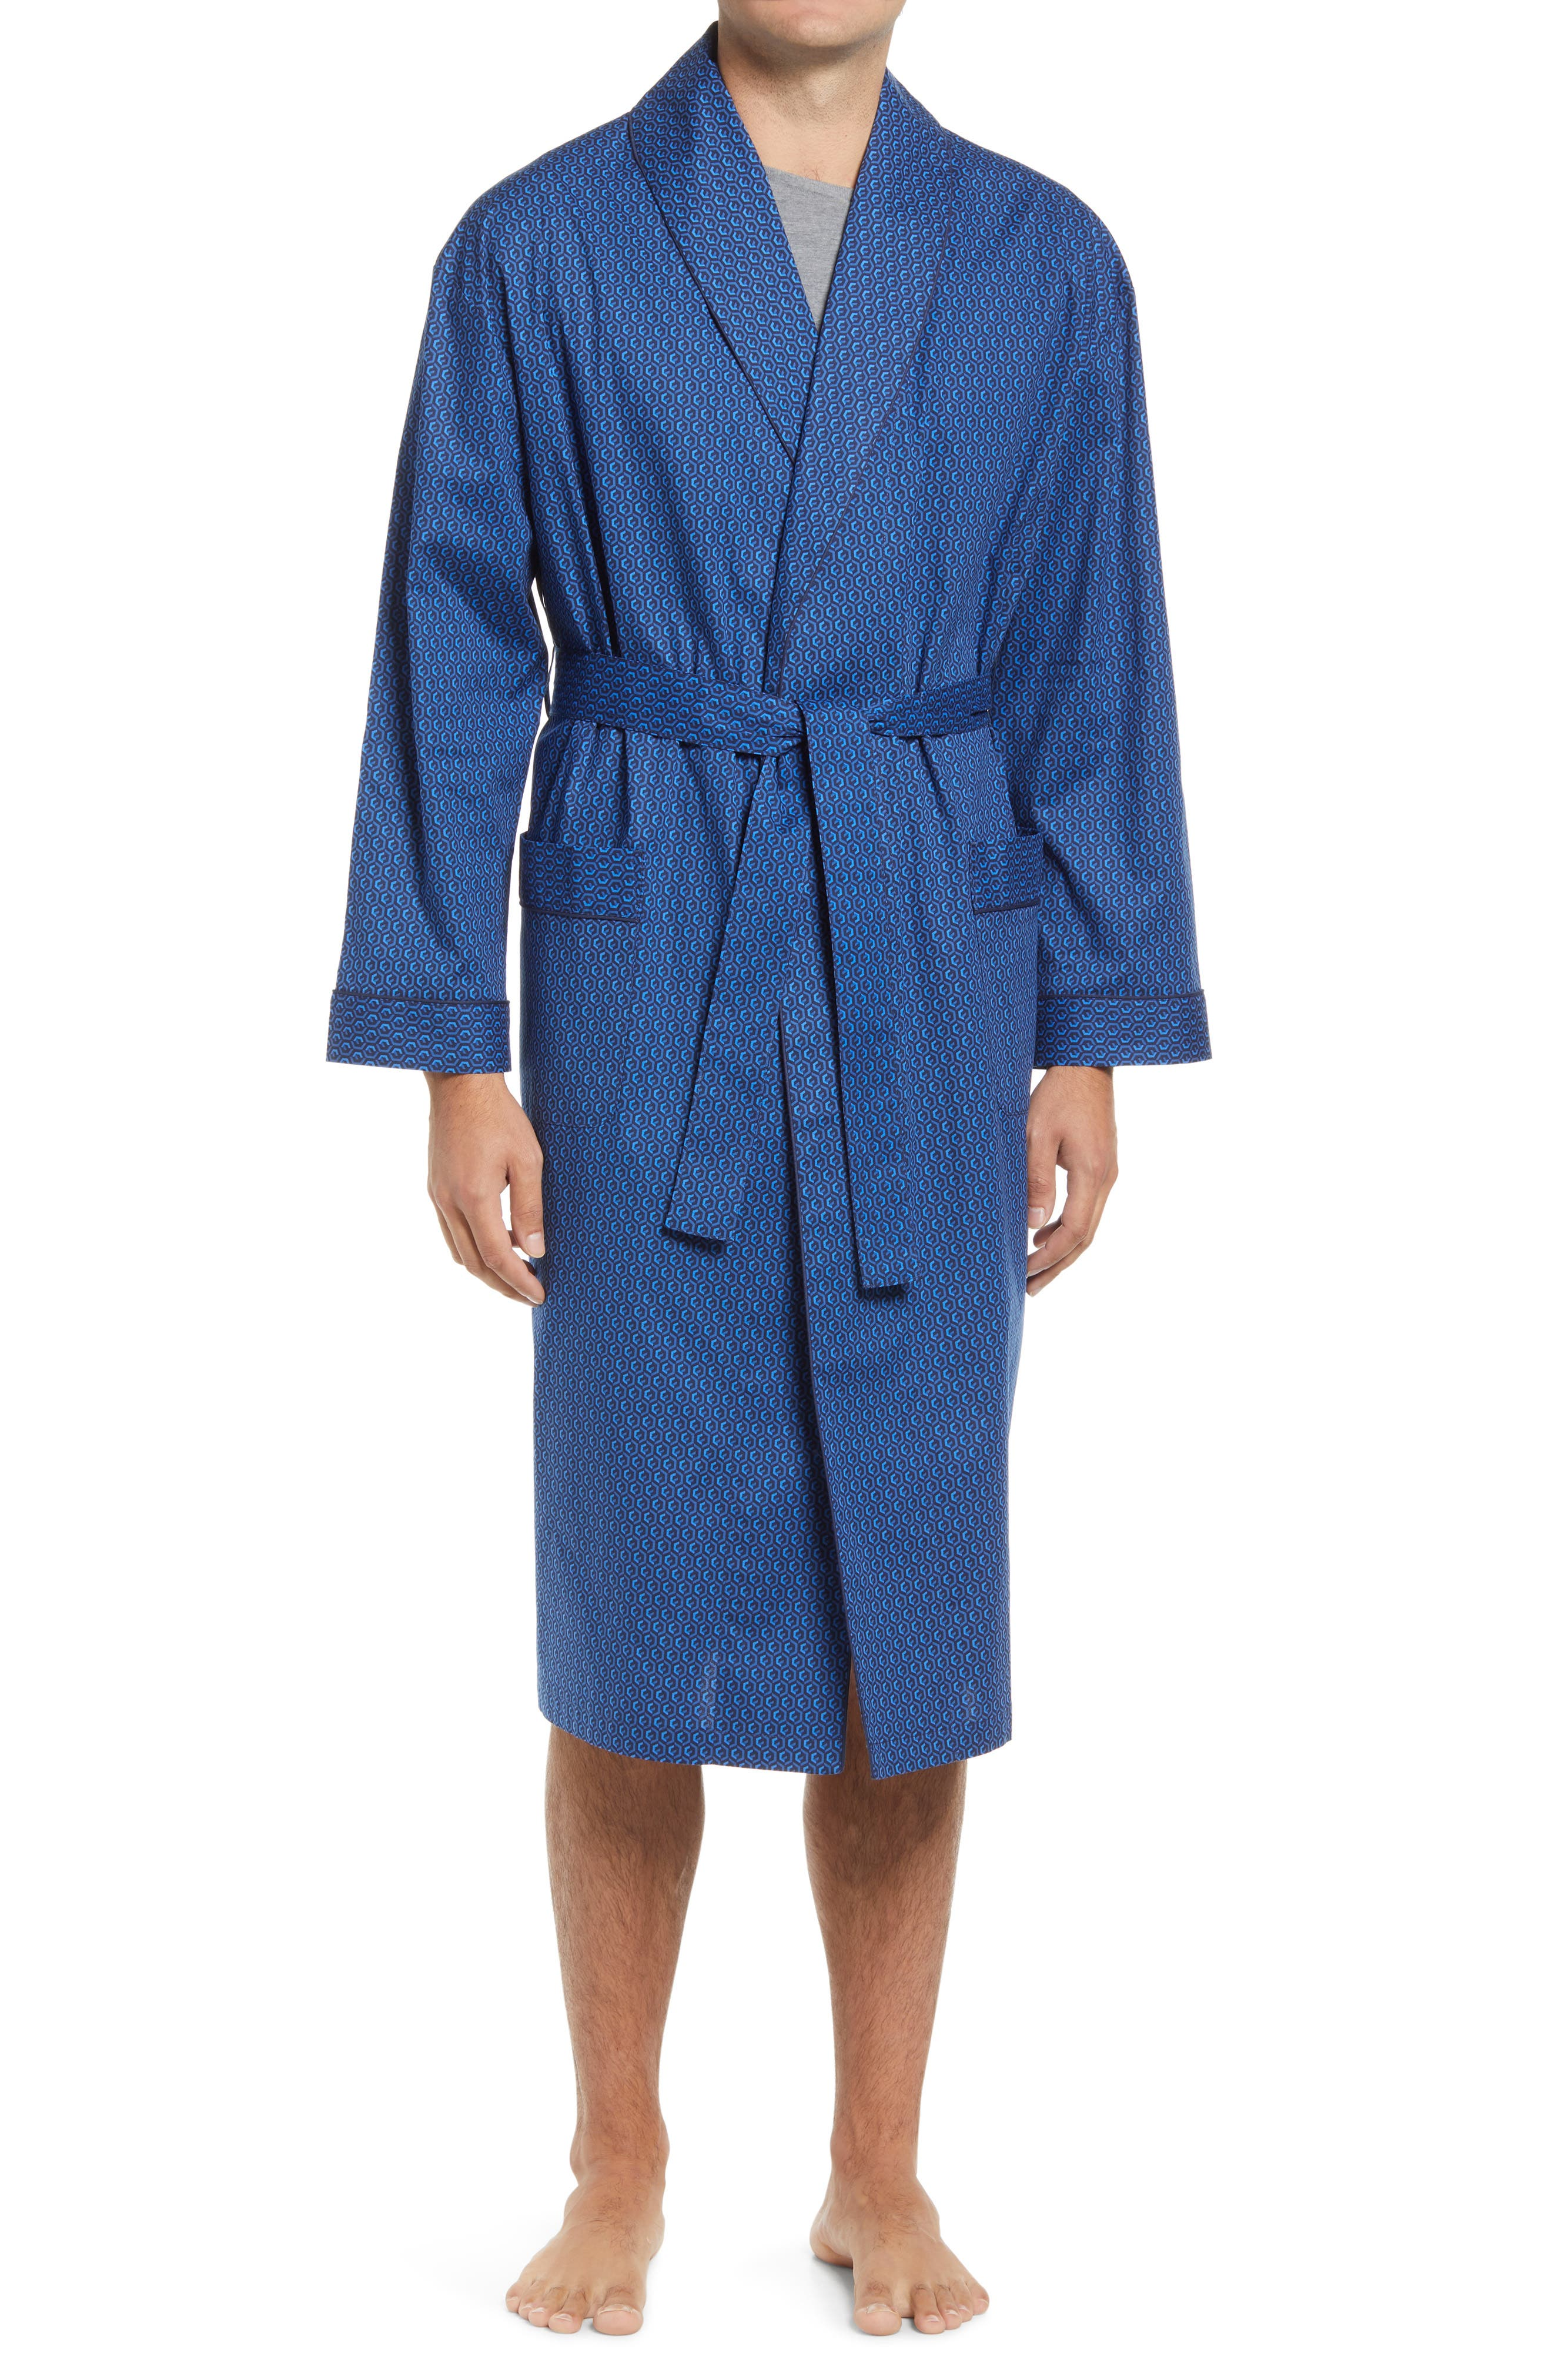 Men's Stretch Out Shawl Collar Robe